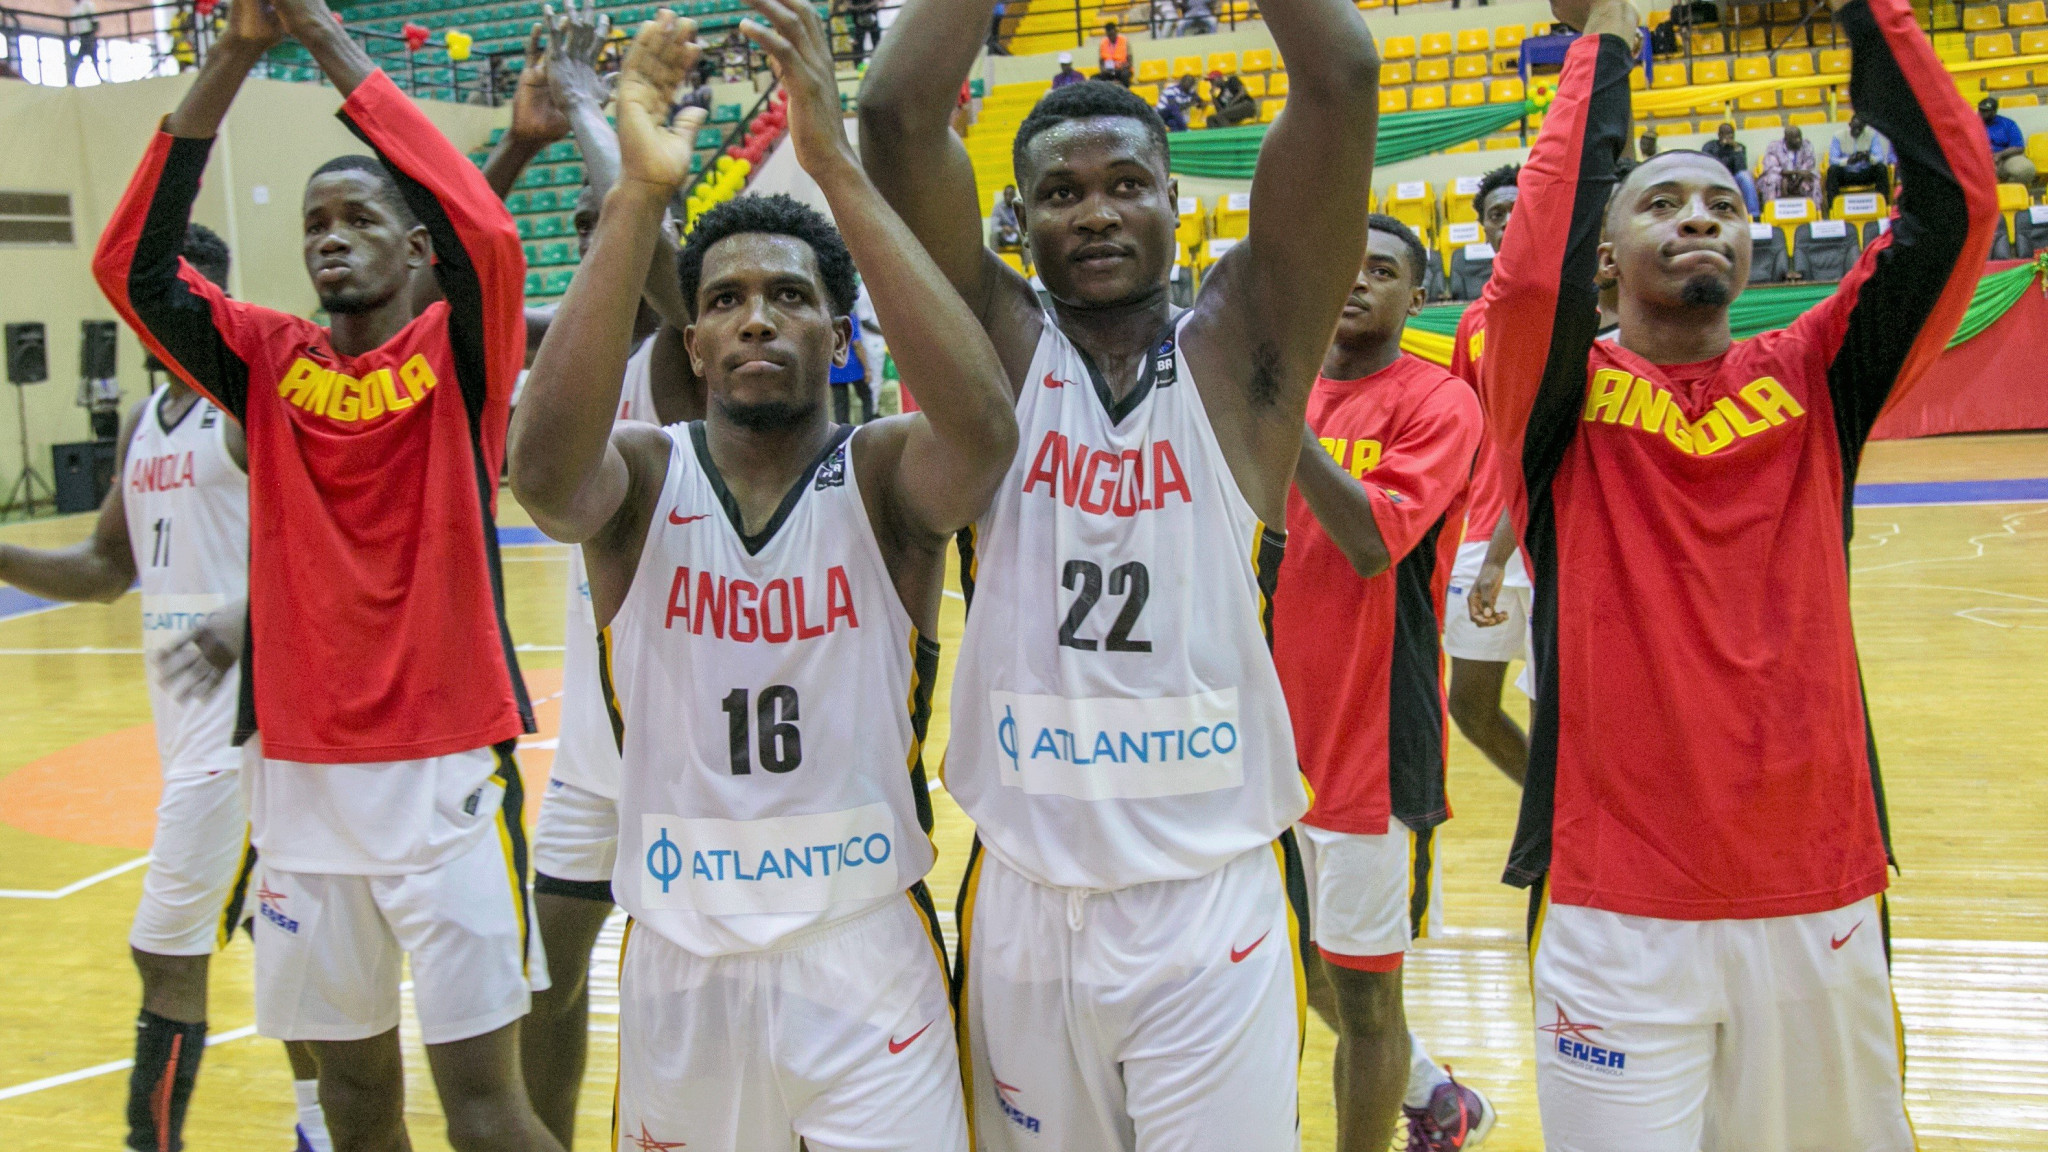 Angola among quartet to secure FIBA AfroCan quarter-finals berths